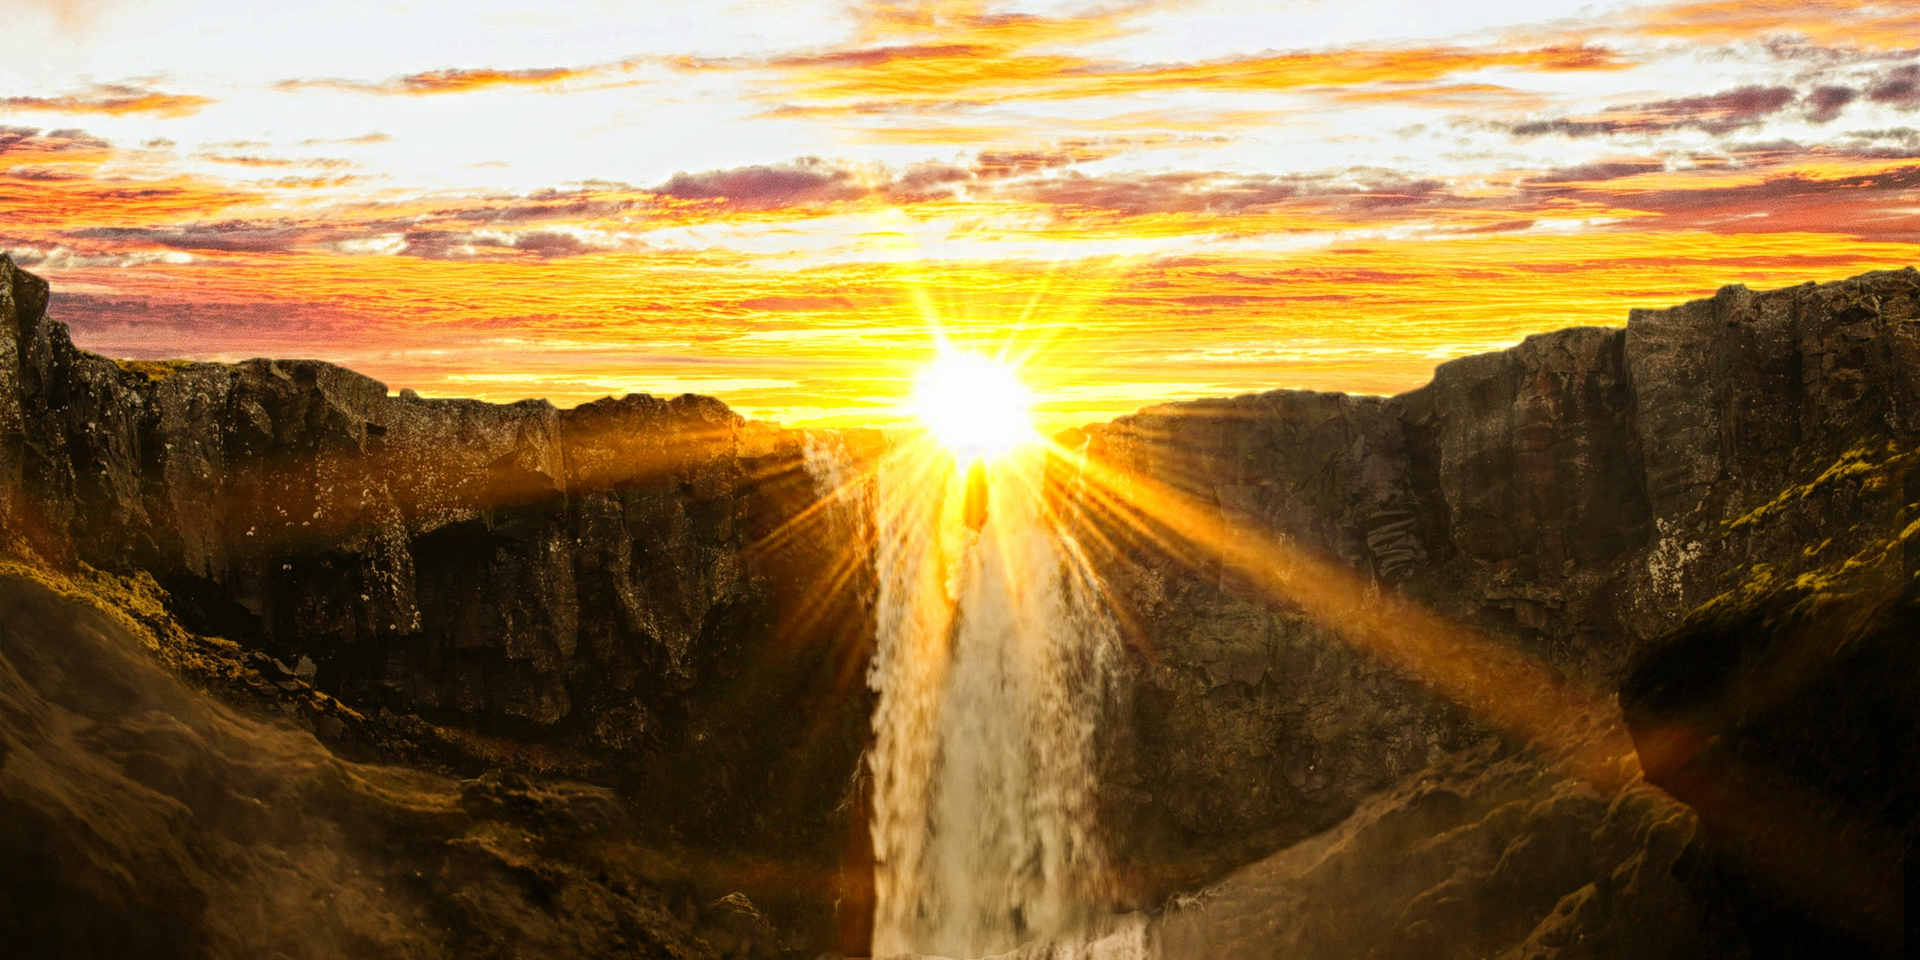 waterfalls-during-sunset-954929.jpg